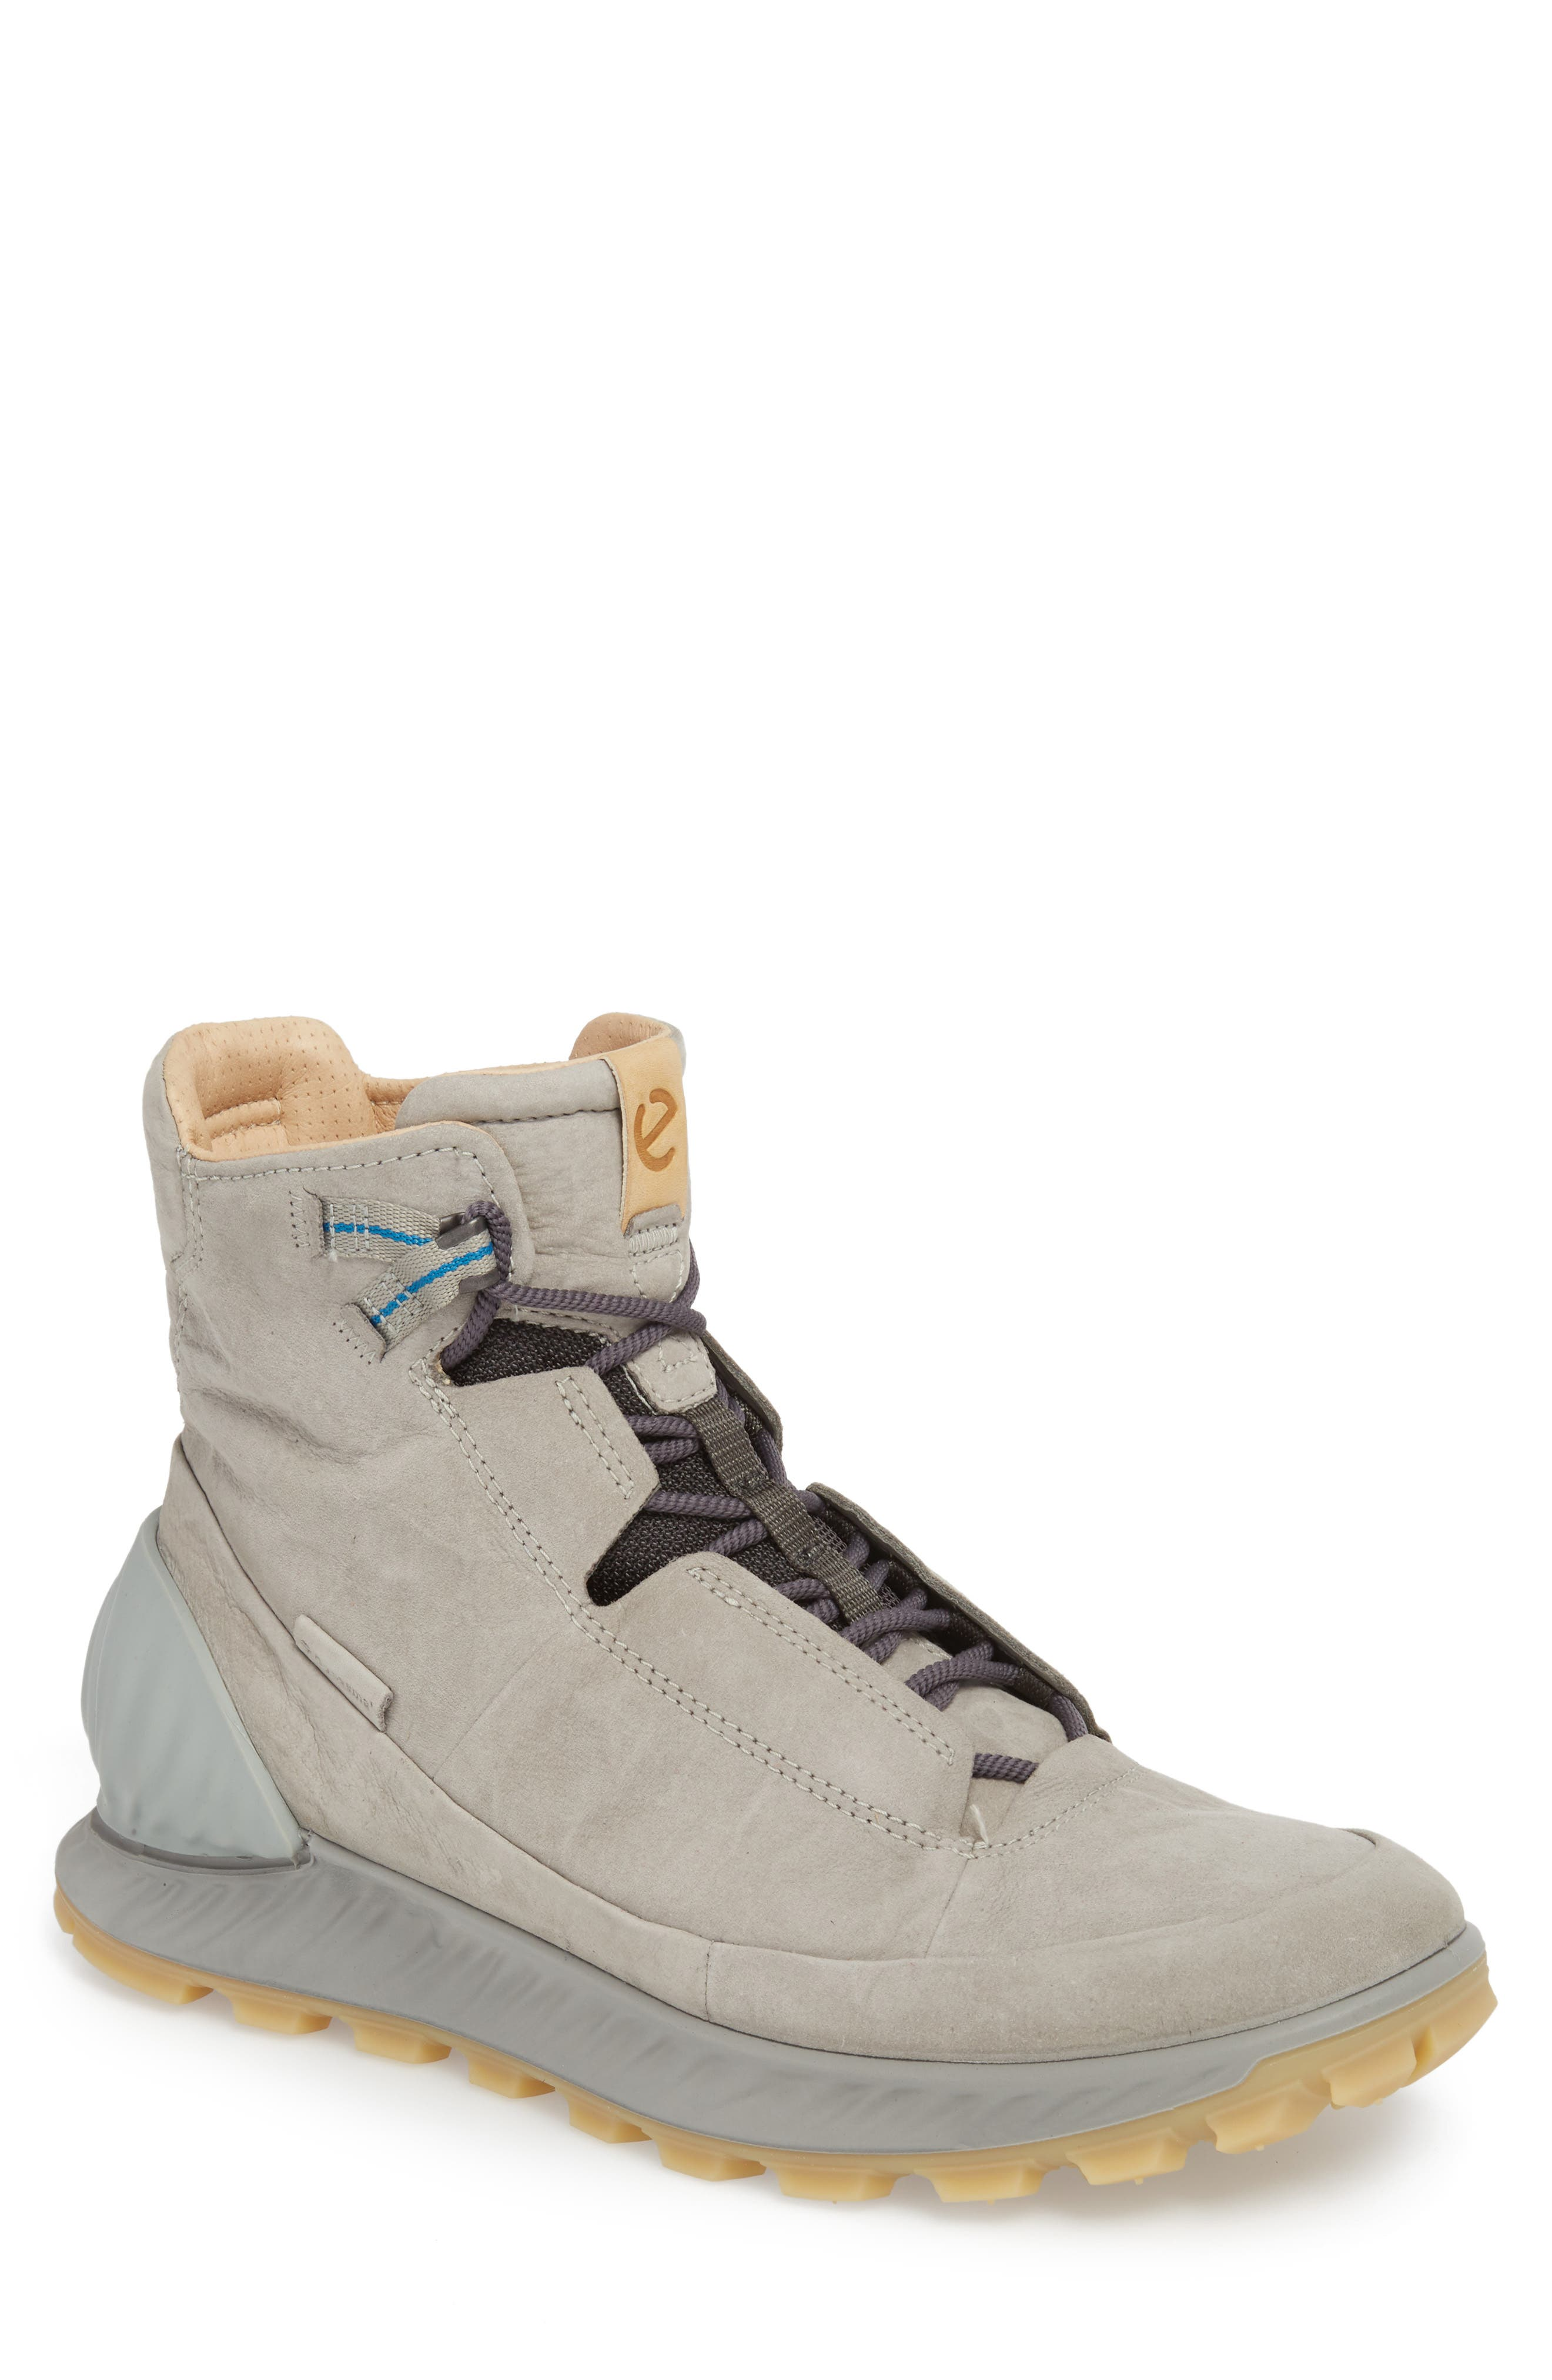 Limited Edition Exostrike Dyneema Sneaker Boot,                             Main thumbnail 1, color,                             Wild Dove Leather